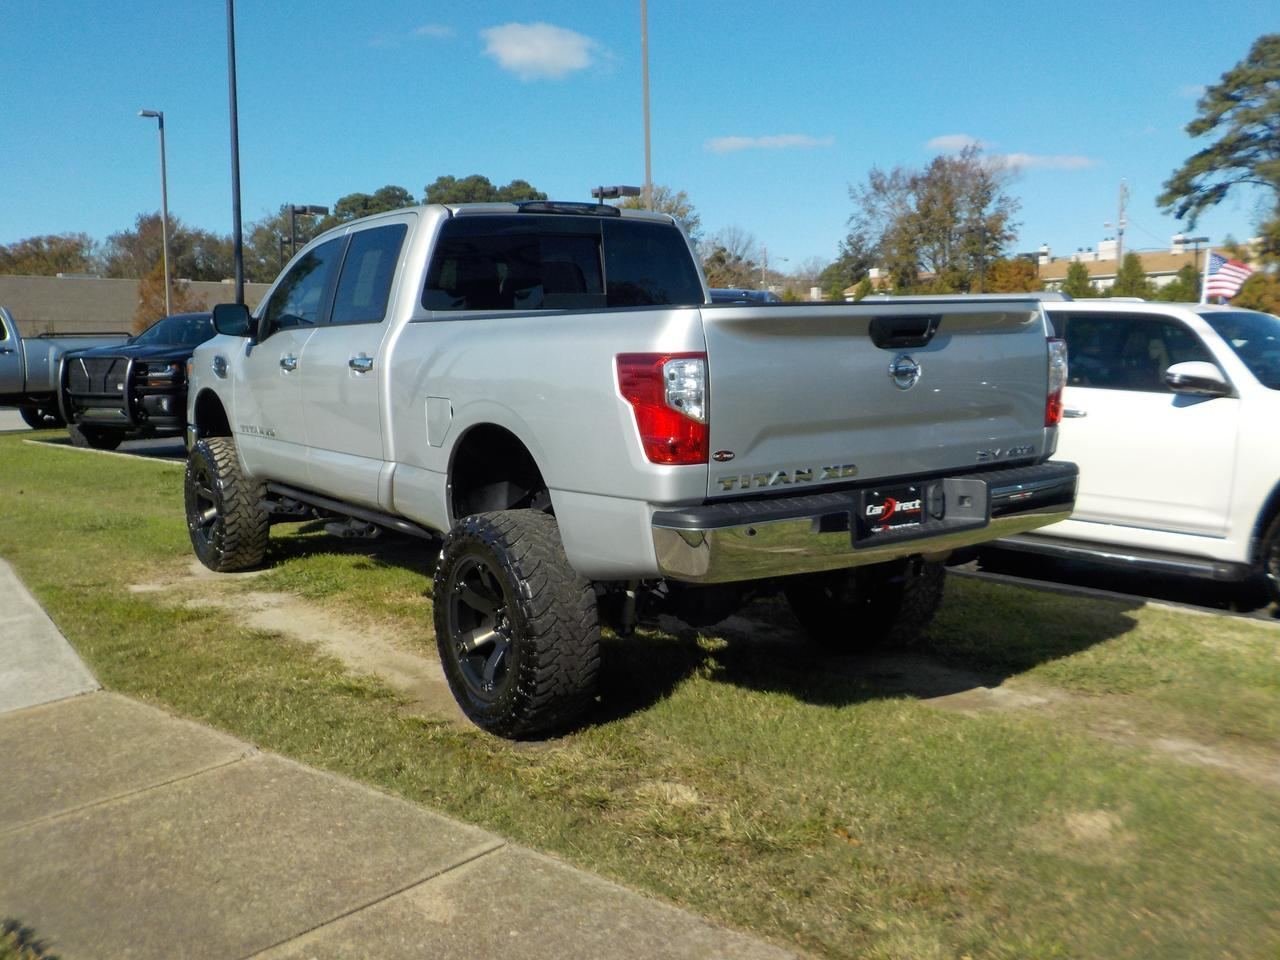 2018 NISSAN TITAN XD CREW CAB SV 4X4, CUMMINS DIESEL,  FUEL RIMS, LIFTED, TOW PKG, BACKUP CAM, BLUETOOTH, 36K MILES! Virginia Beach VA